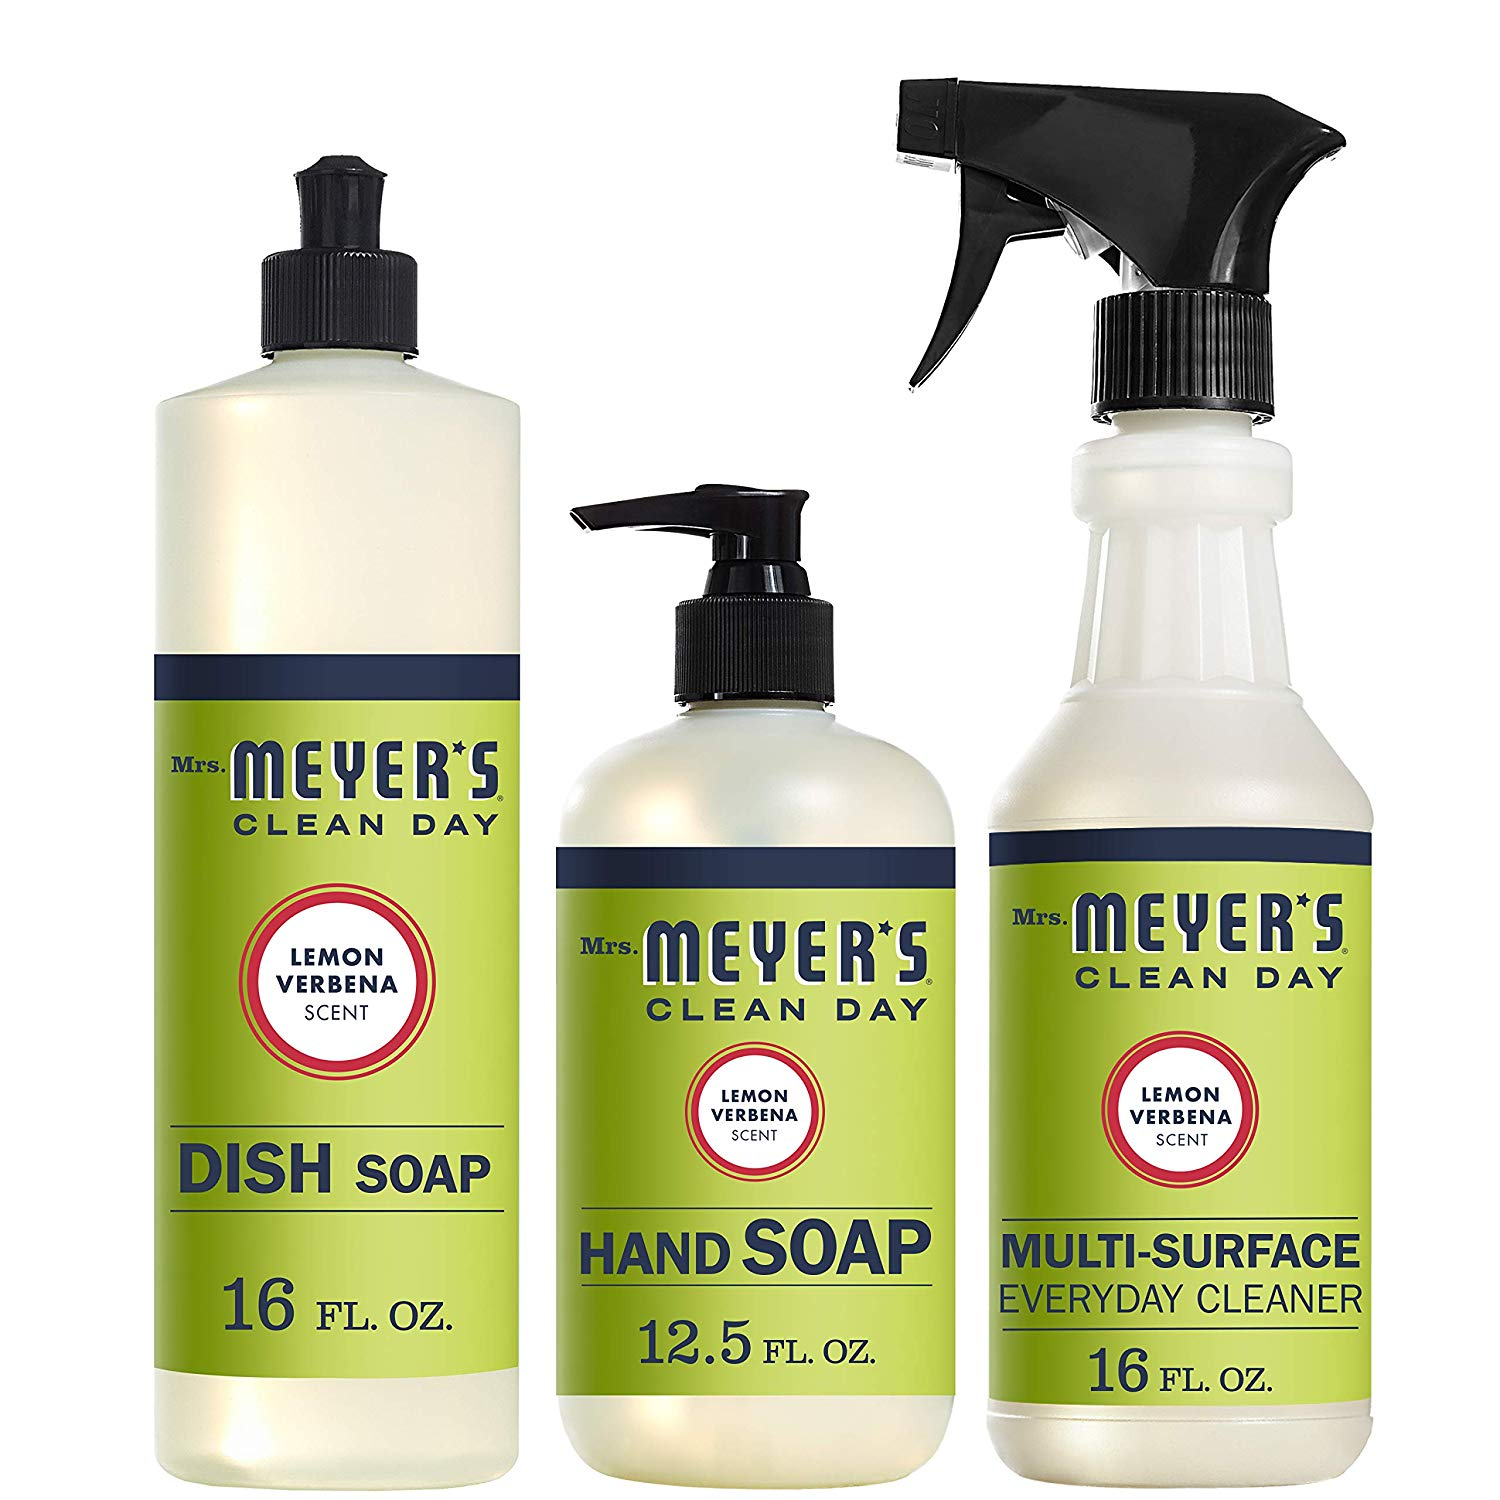 Soap (our favorite!)